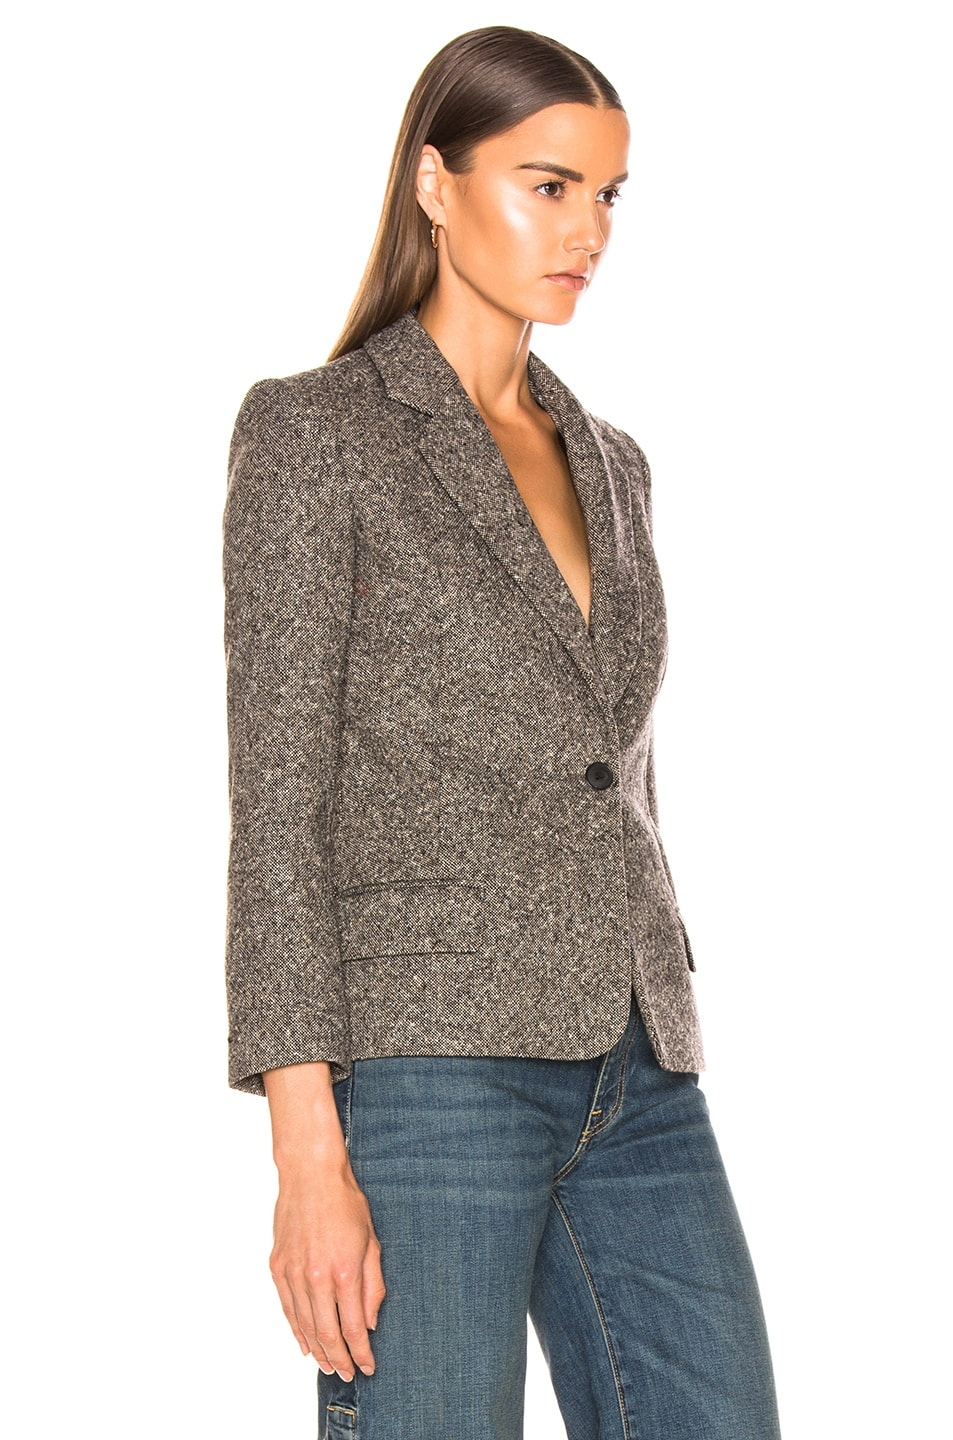 NILI LOTAN Humphrey Jacket Brown Melange 70%OFF